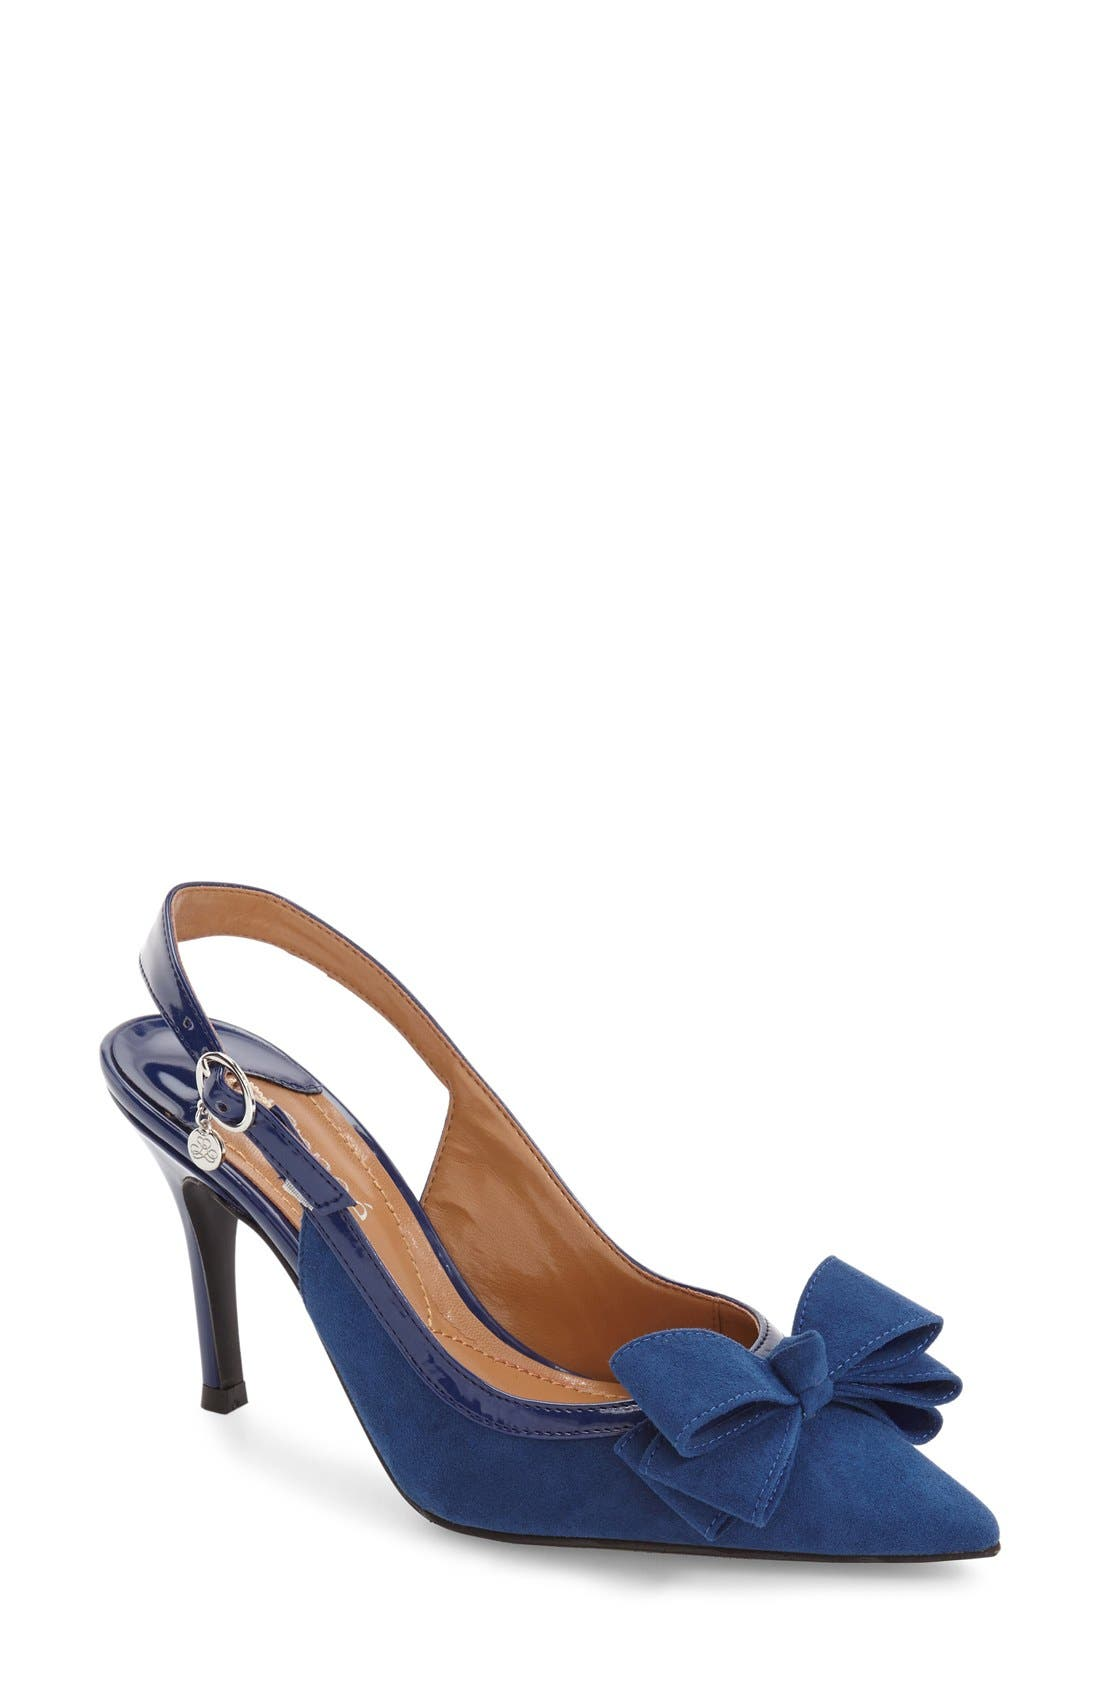 Charis Slingback Bow Pump,                         Main,                         color, Imperial Blue Faux Suede